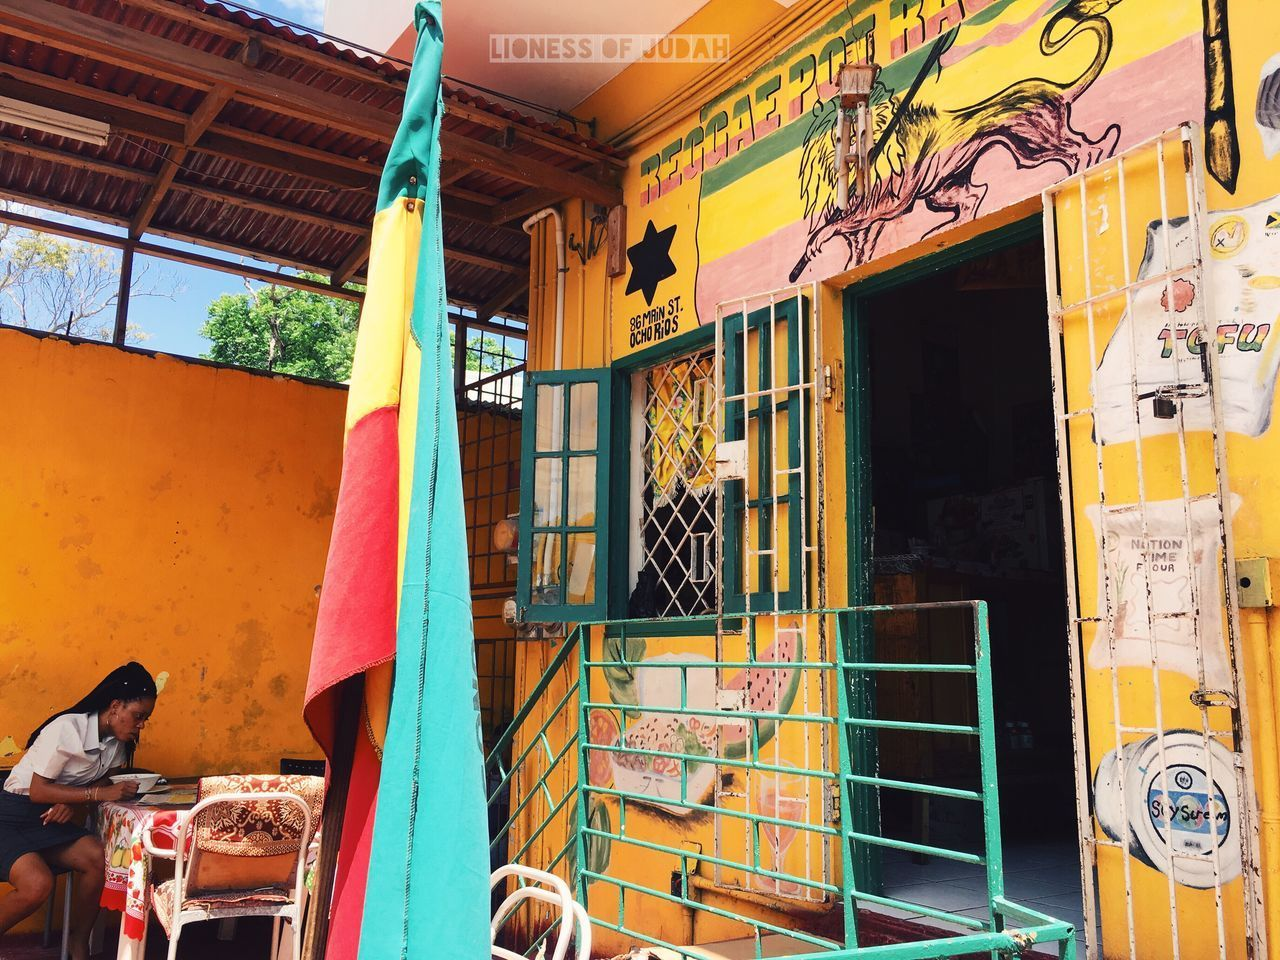 Jamaica Rastafari Vegan RASTA Lionessofjudah Italisvital Redgoldgreen Multi Colored Day Outdoors Real People Architecture